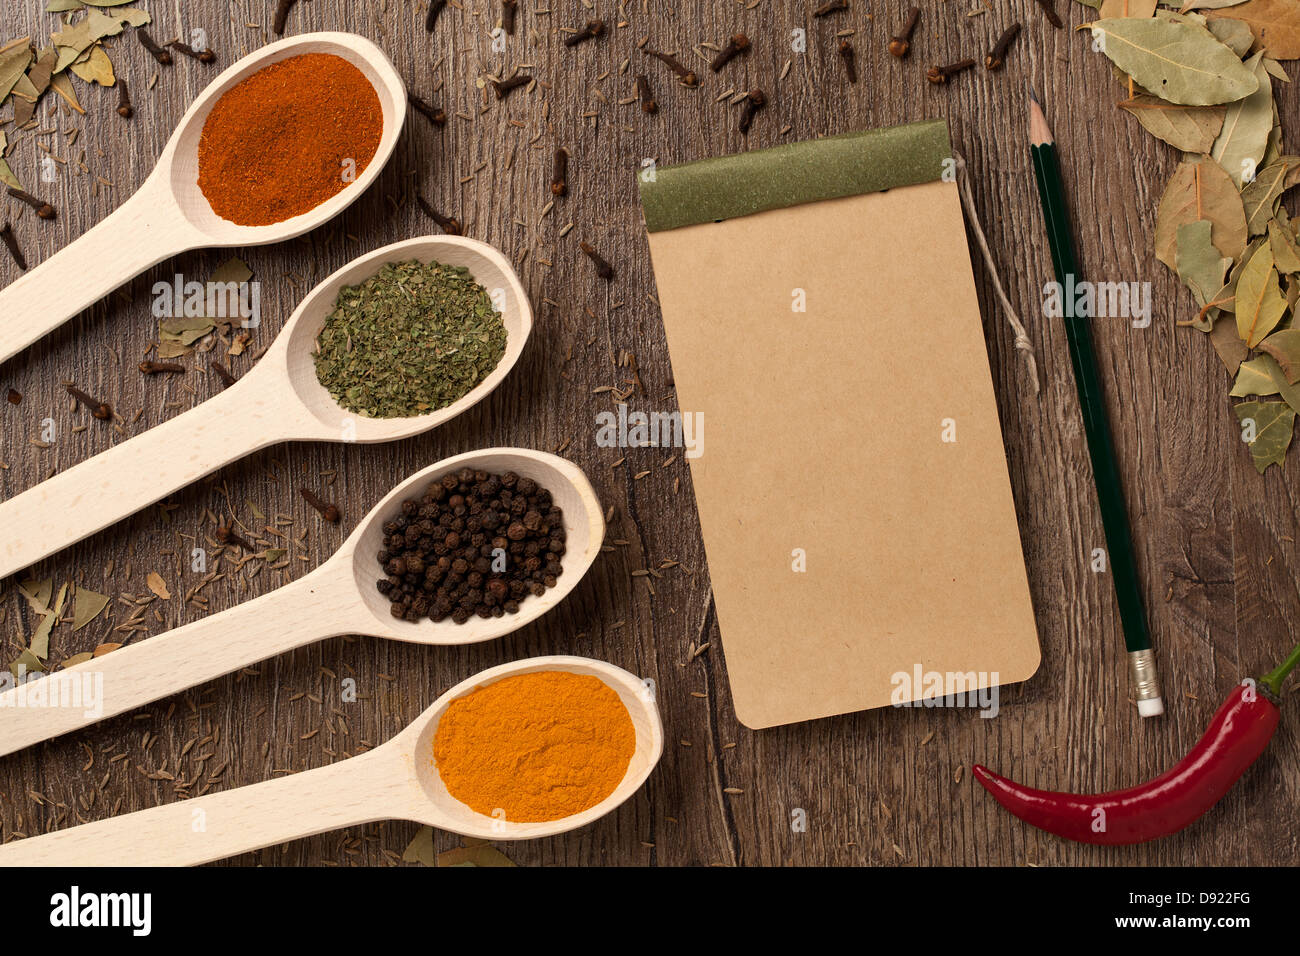 Red chili peppers, spices in spoons, notebook paper and